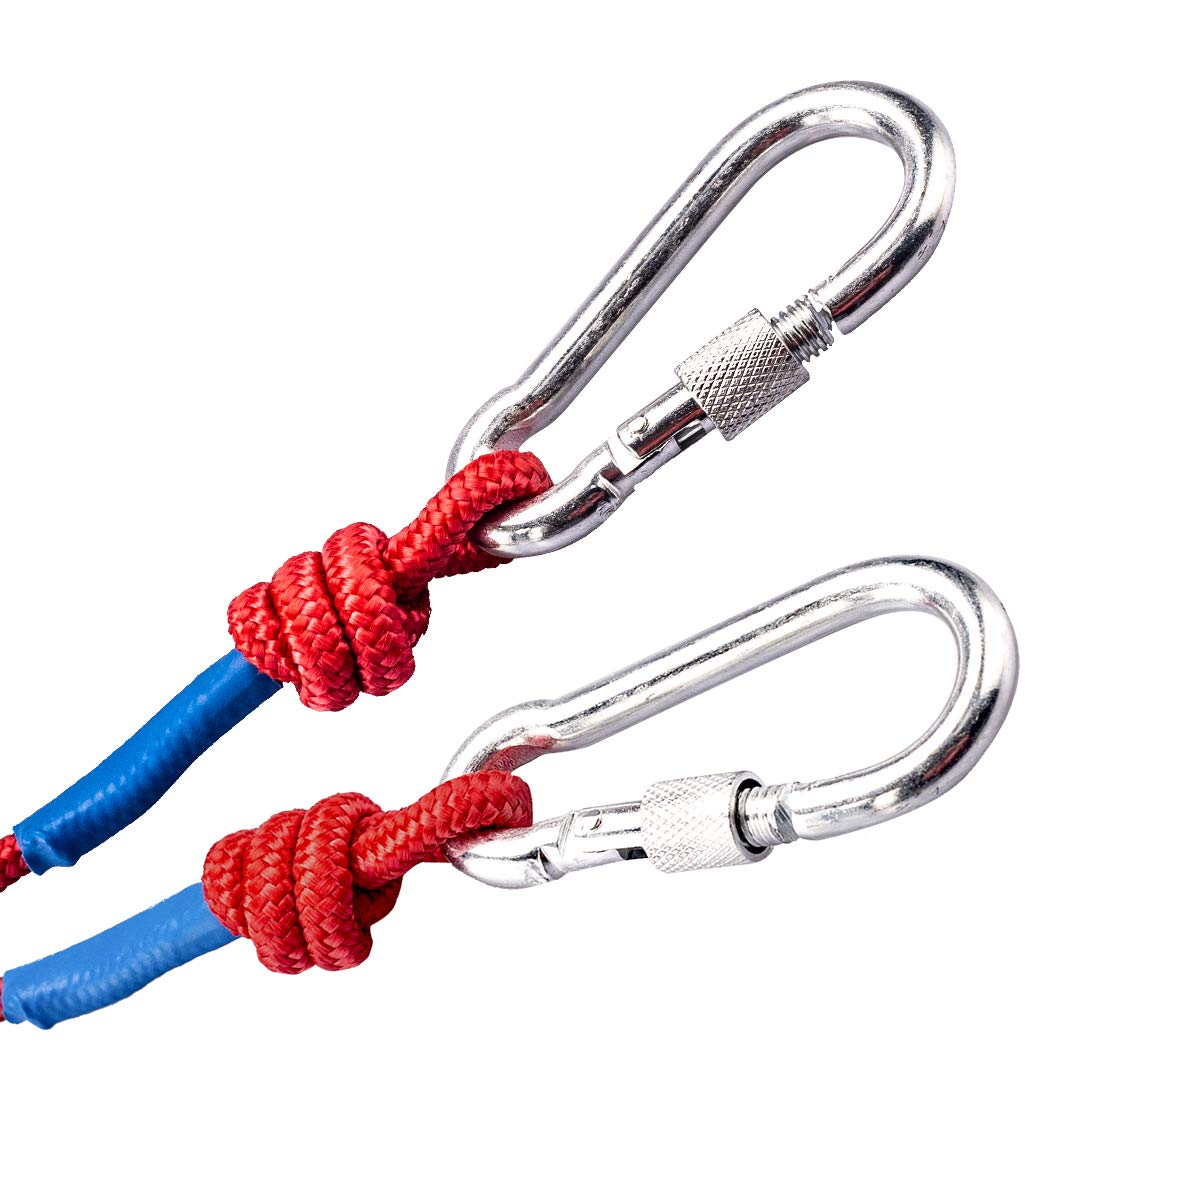 Fishing Magnet with 66ft Rope & Glove, Wukong 760LB Pulling Force Super Strong Neodymium Magnet with Heavy Duty Rope & Carabiner for Magnet Fishing and Retrieving in River - 67mm Diameter by Wukong (Image #2)